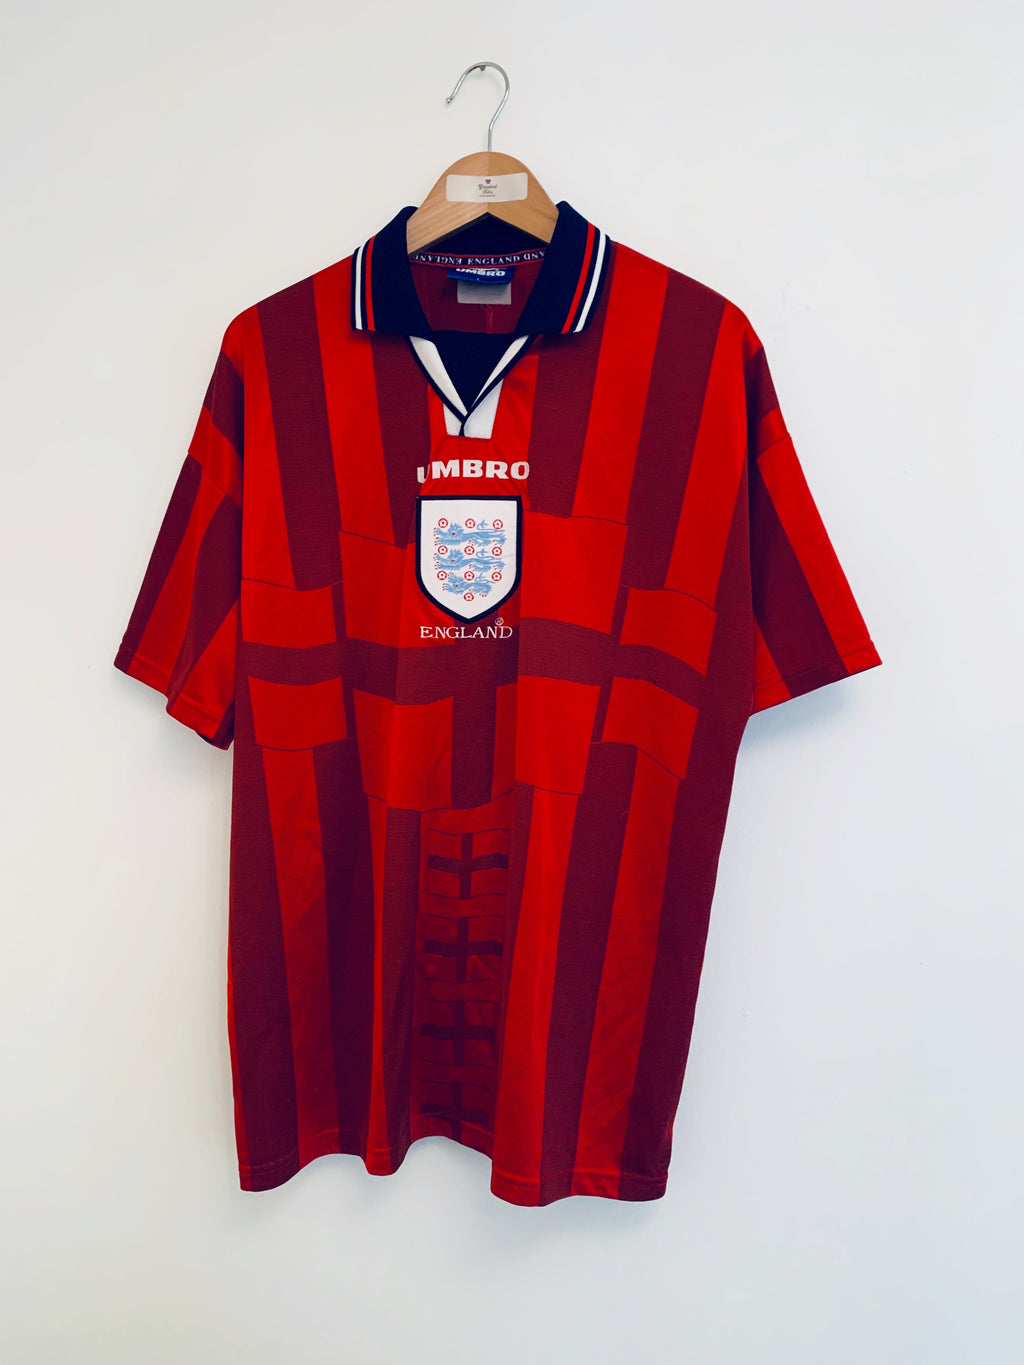 1997/99 England Away Shirt (L) 7.5/10